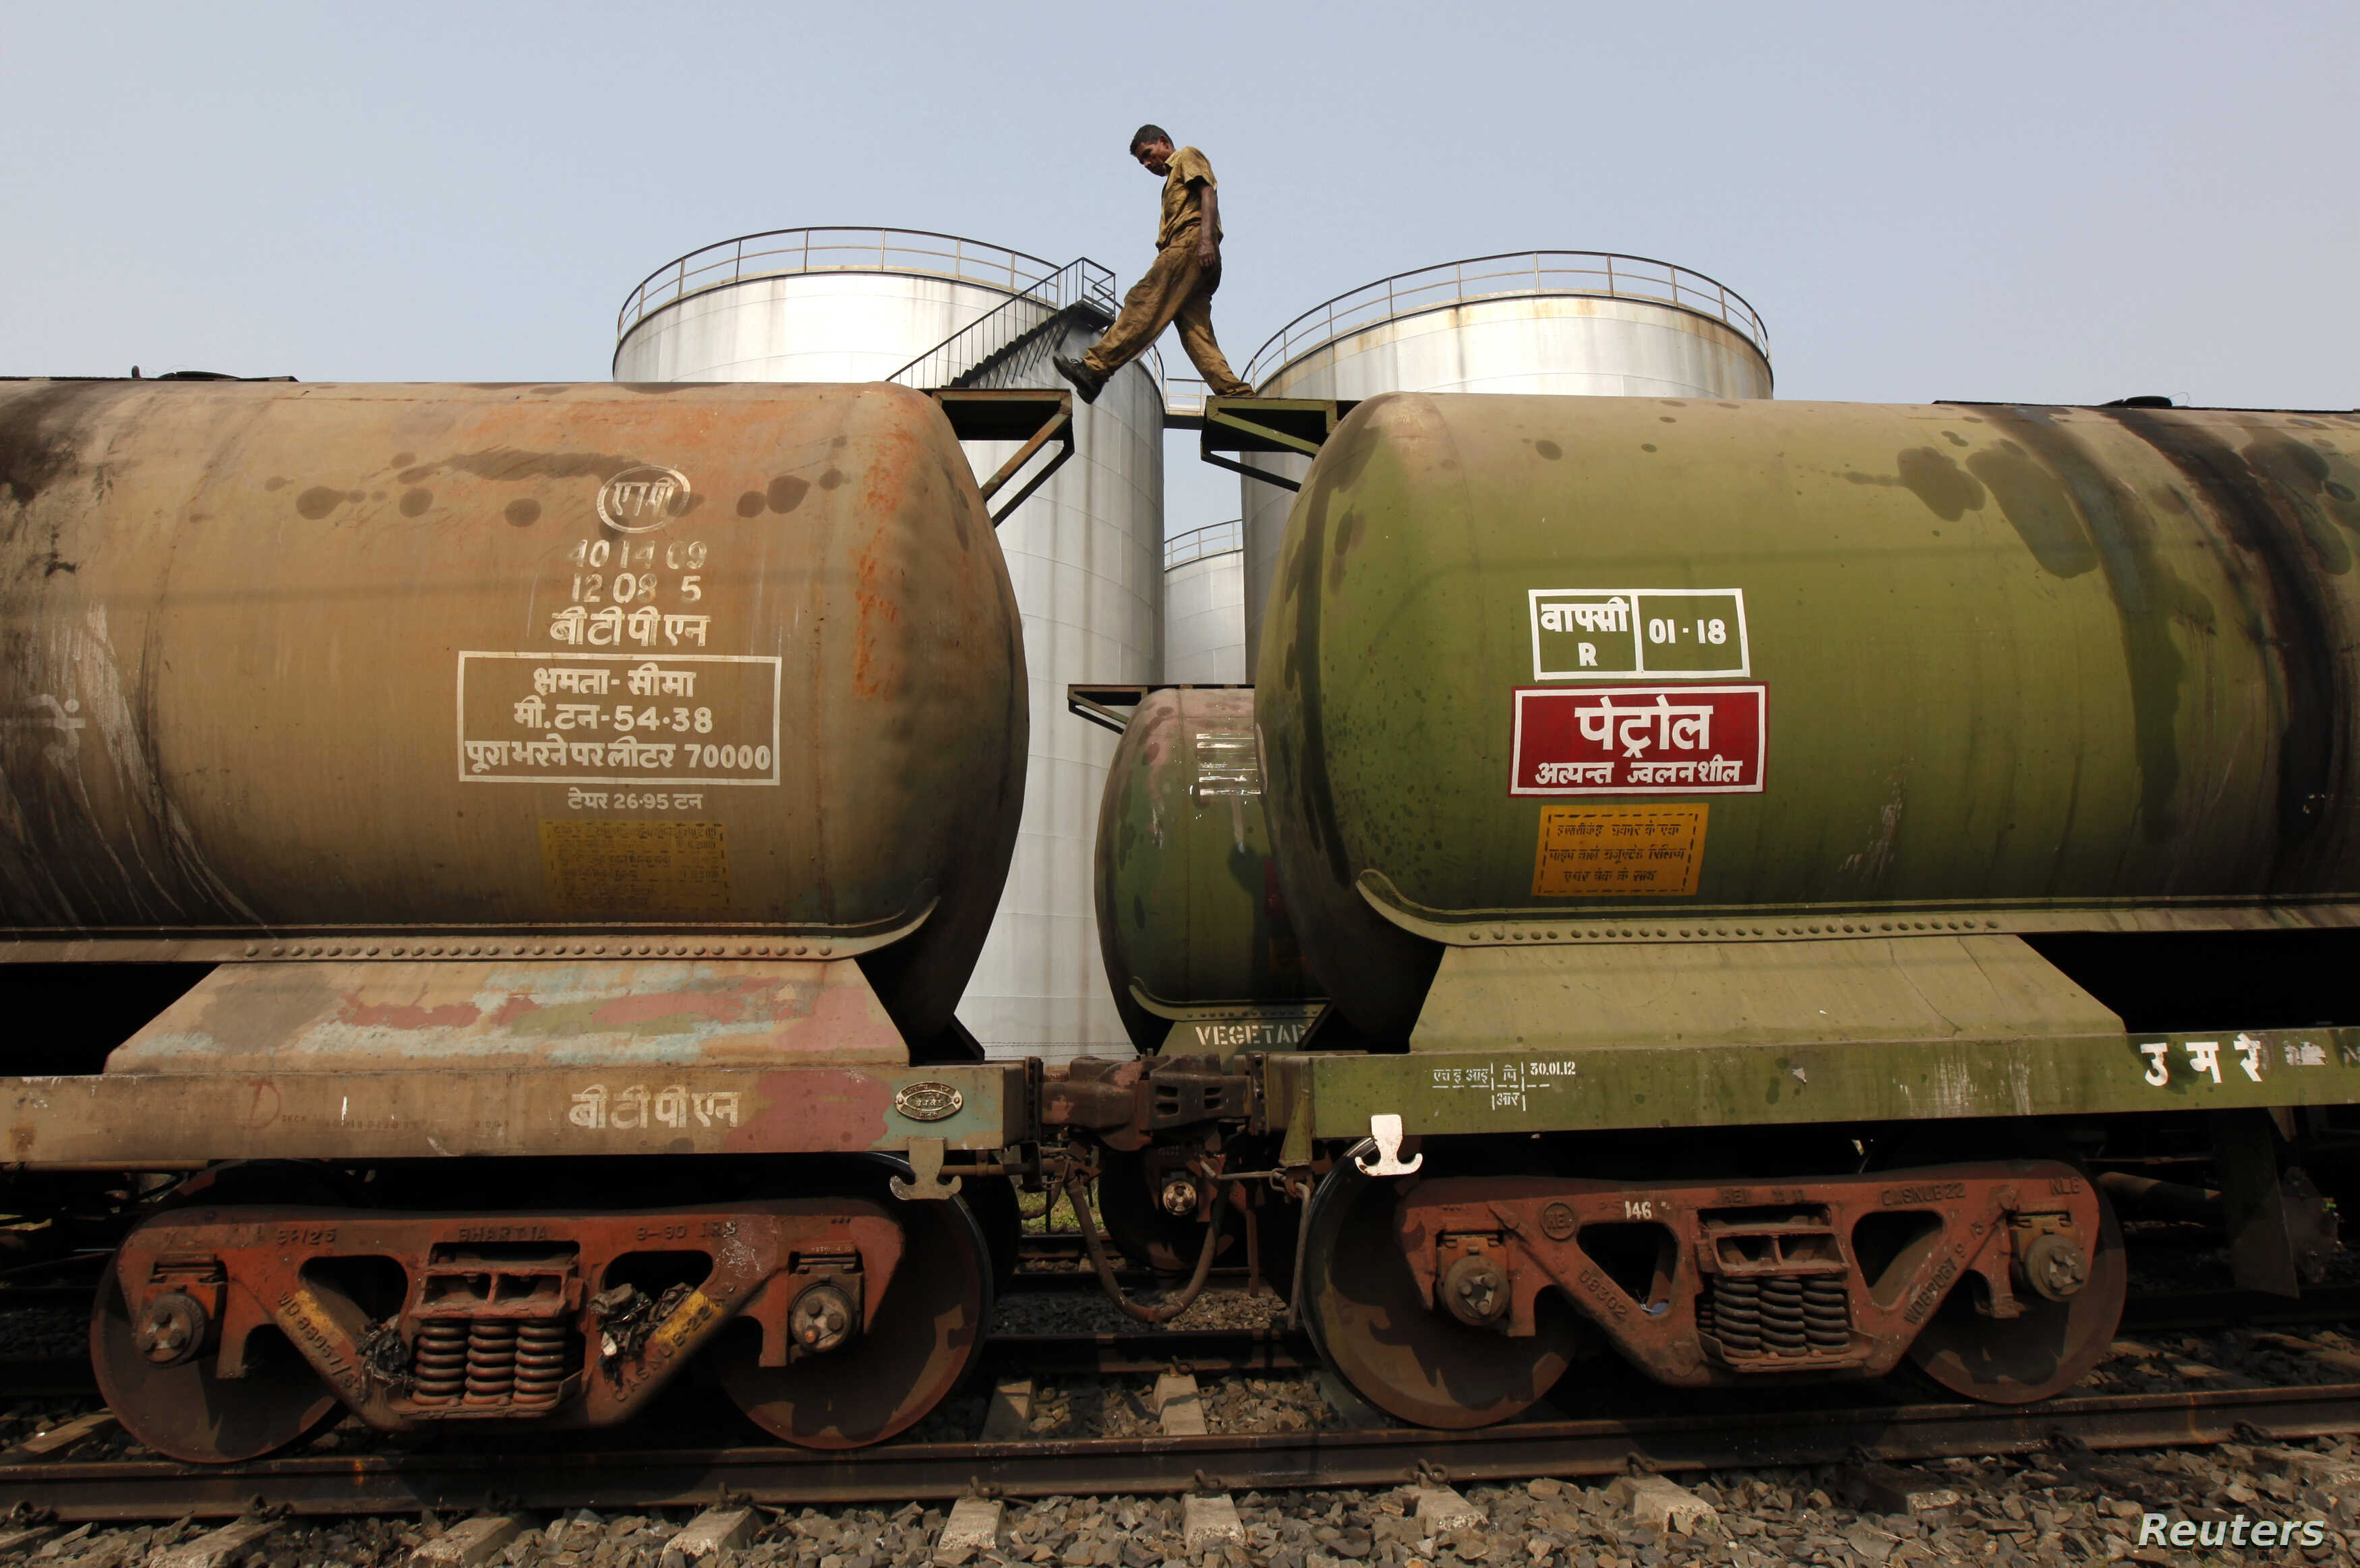 A worker walks atop a tanker wagon to check the freight level at an oil terminal on the outskirts of Kolkata, Nov. 27, 2013.